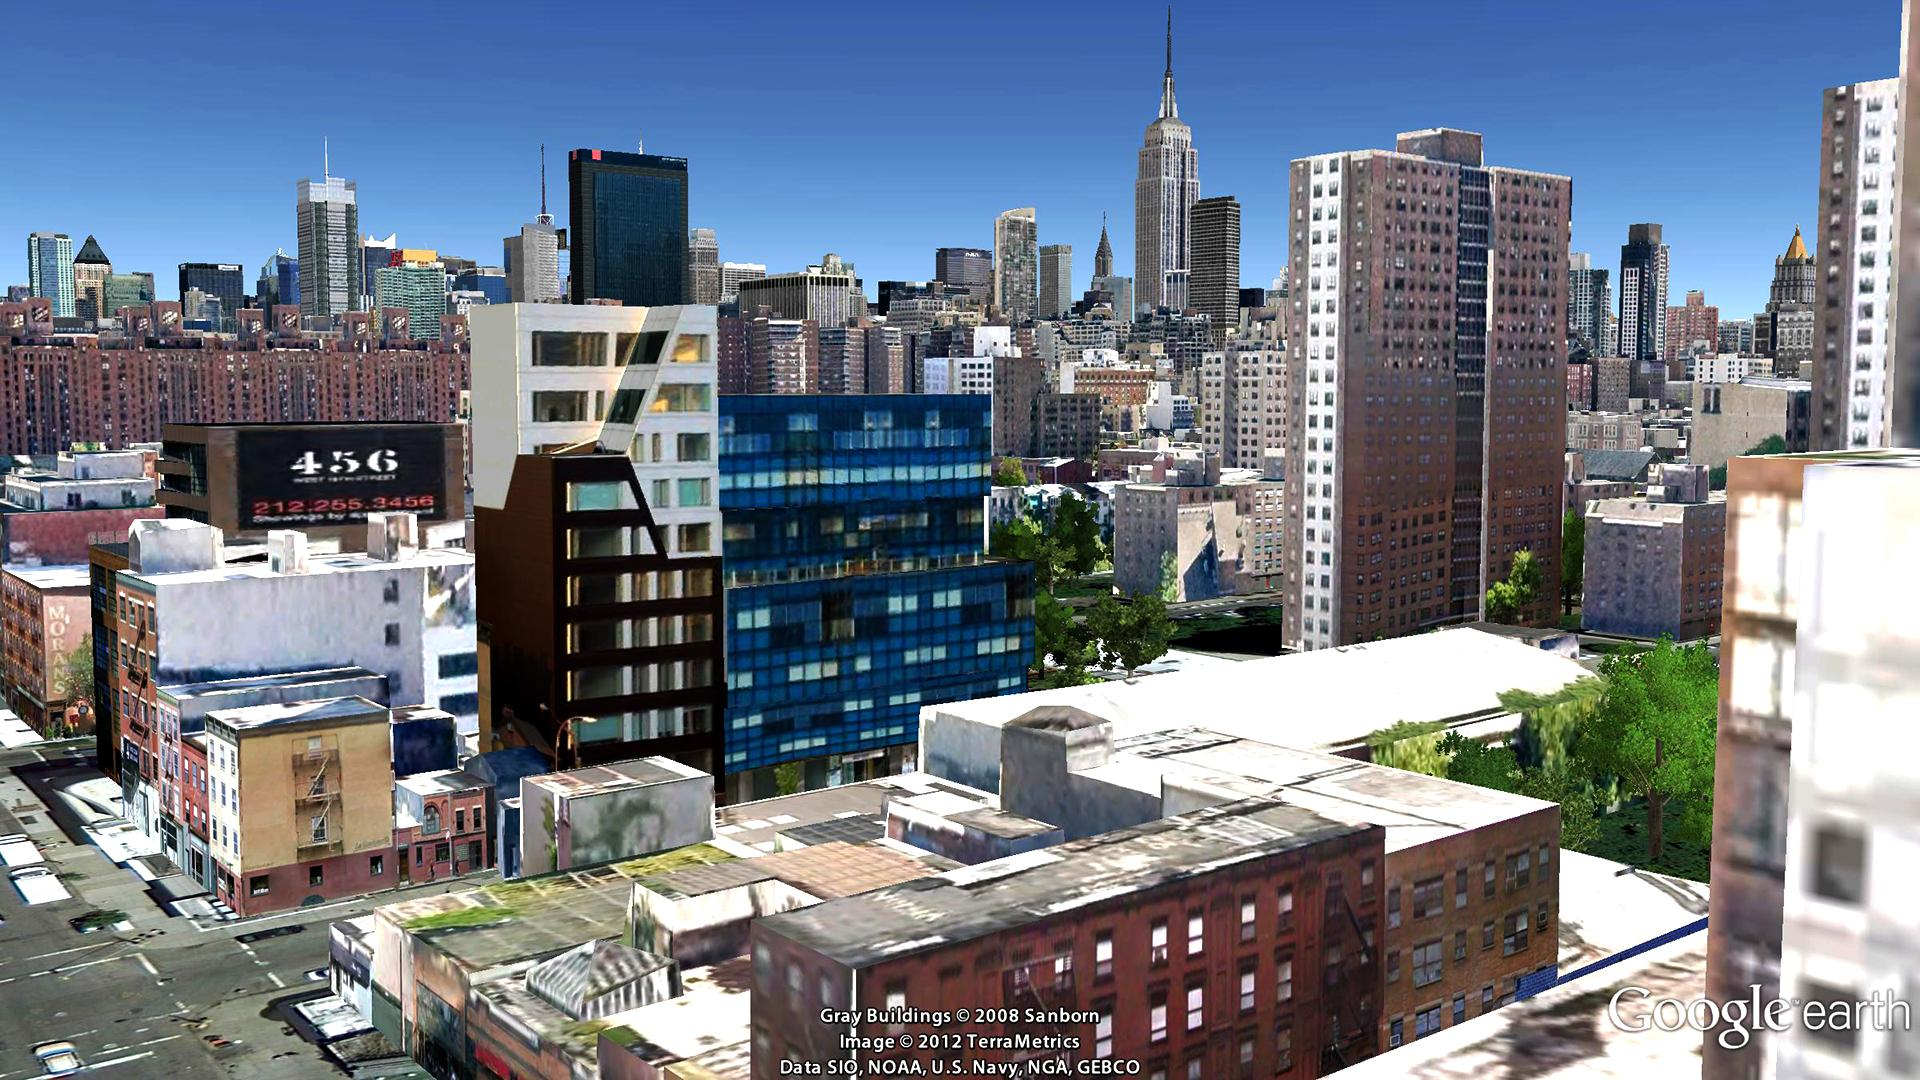 Chelsea modern 447 west 18th street condo apartments for Chelsea nyc apartments for sale